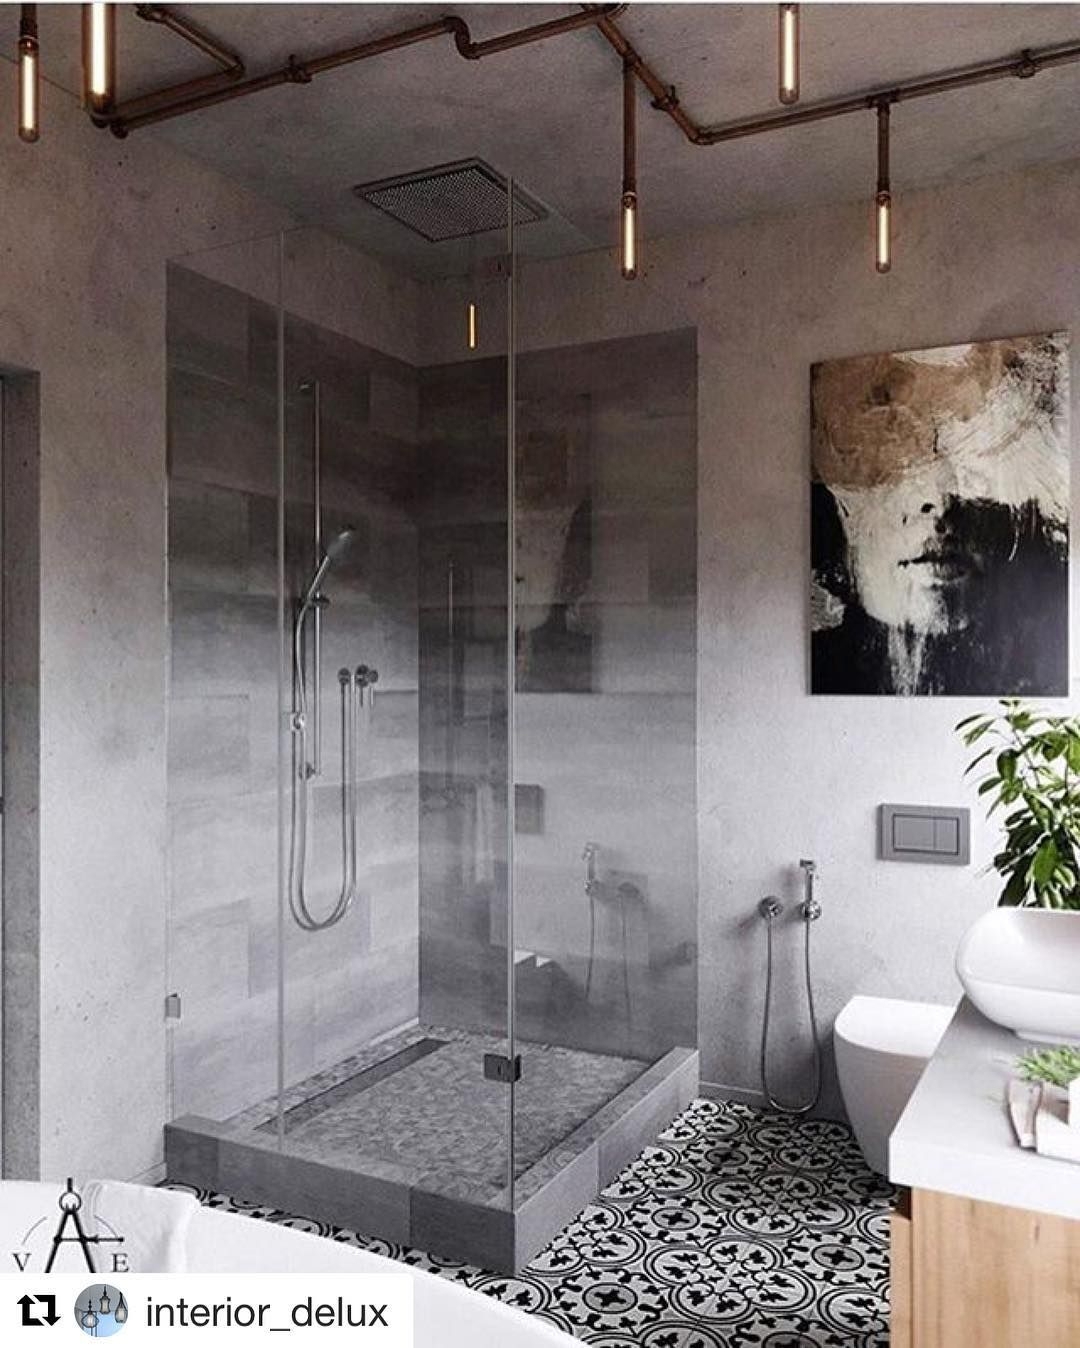 Today S Bathroom Inspo Industrial Chic Bathroom Bathroomdesign Industrialdesign Industrial Style Bathroom Industrial Bathroom Design Bathroom Inspiration